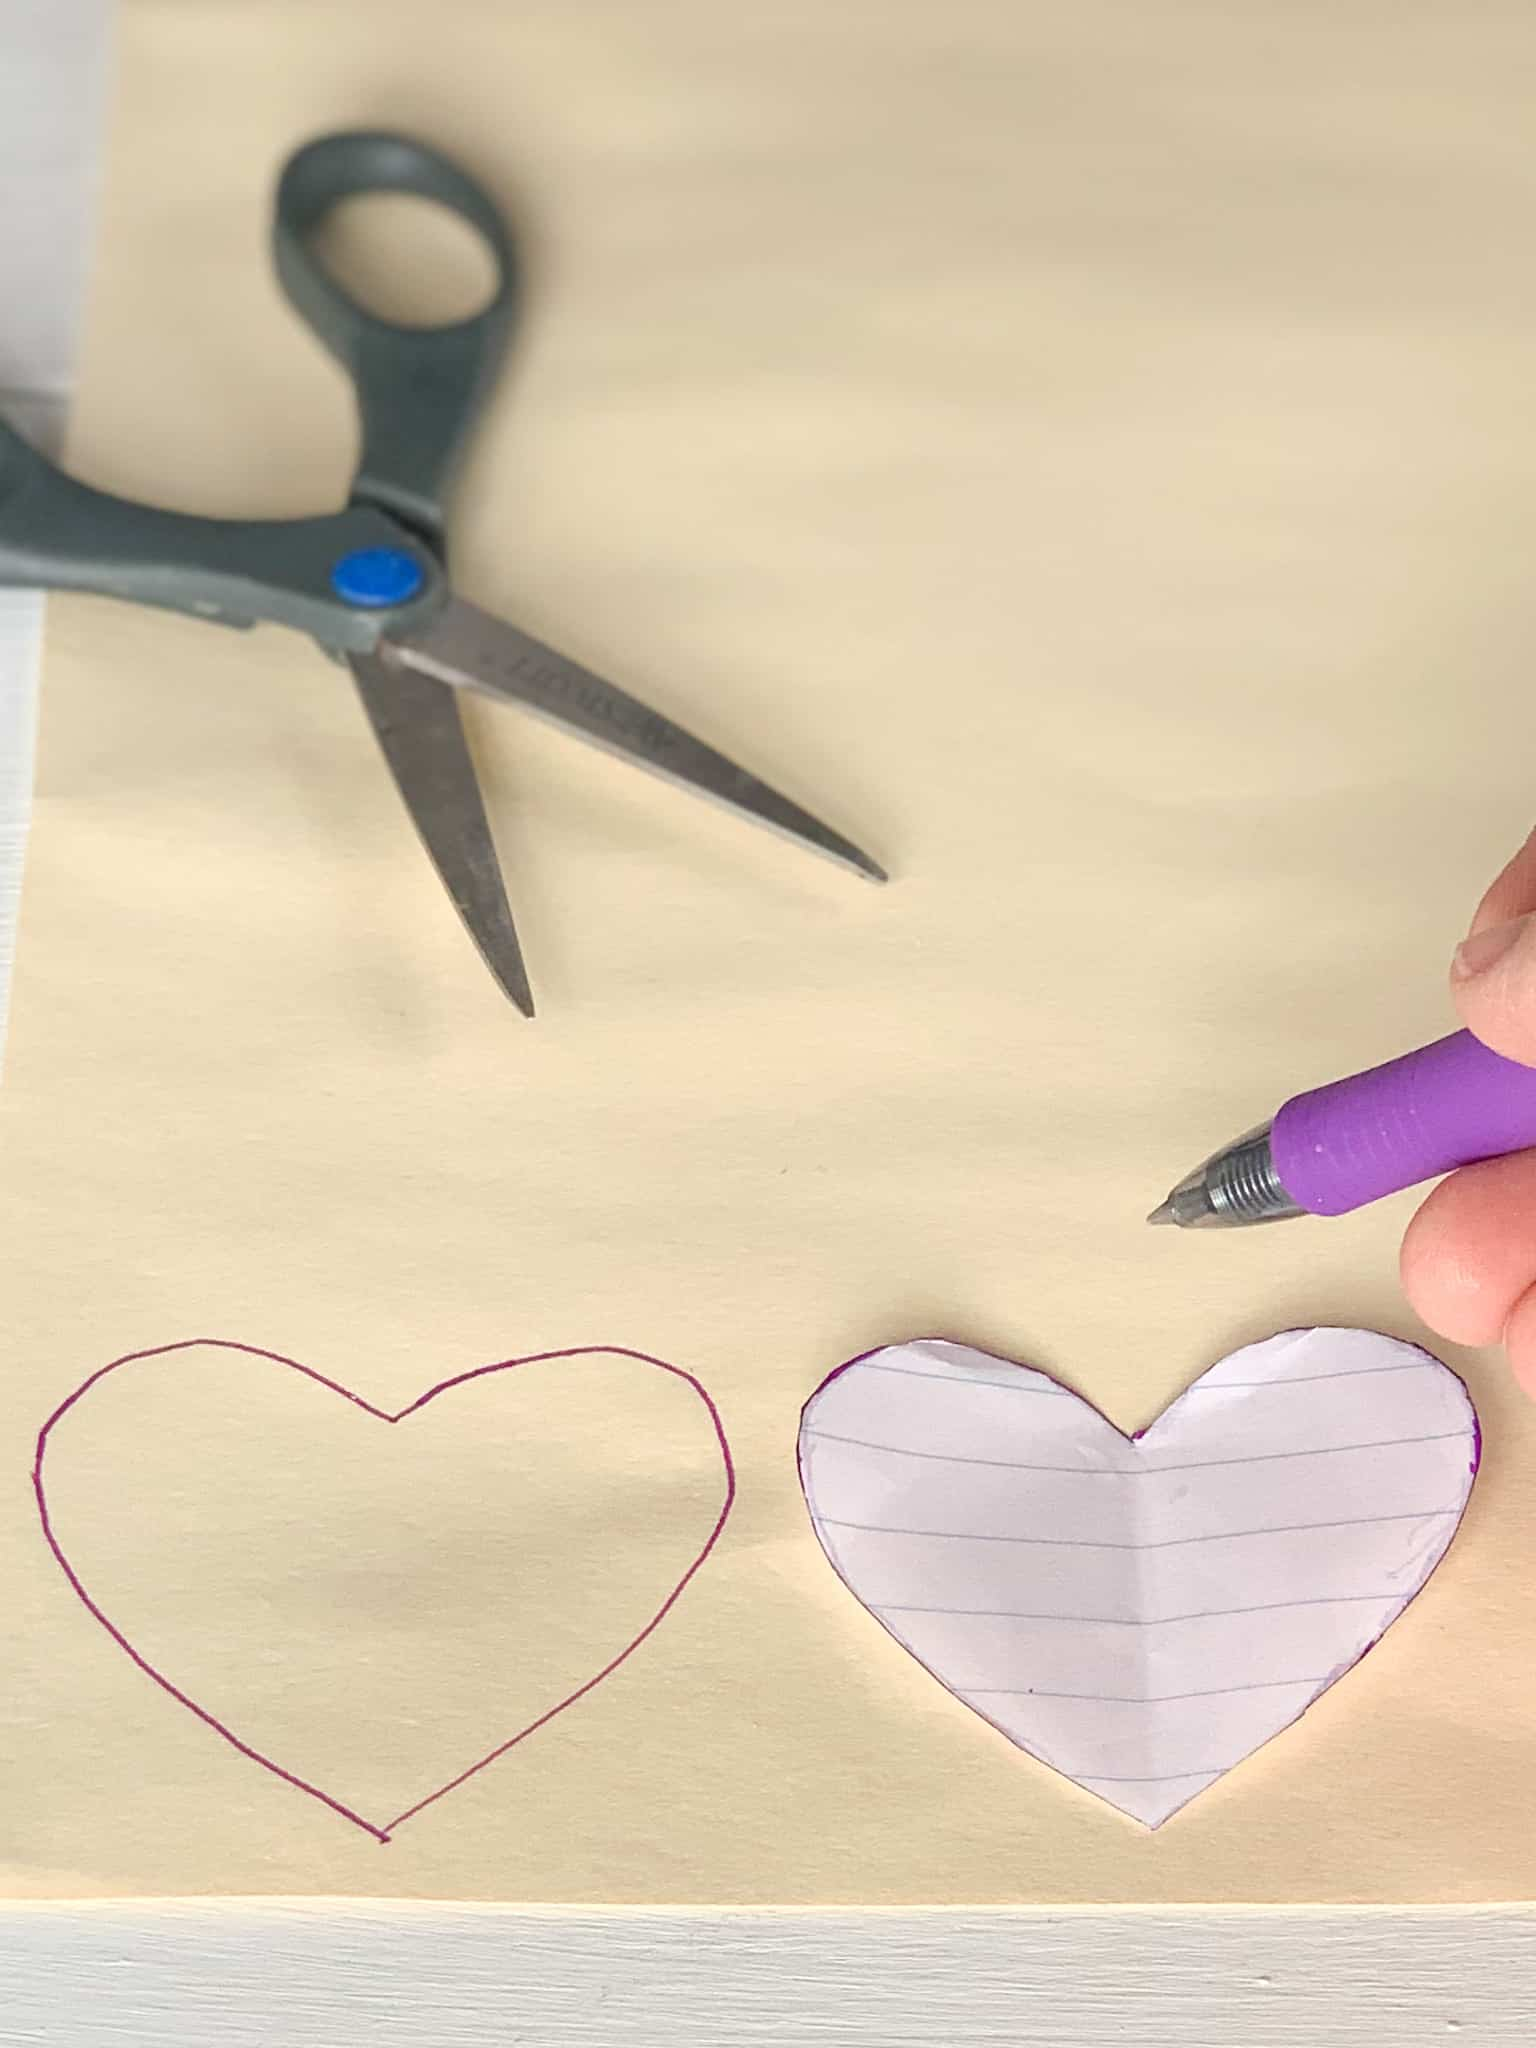 Tracing hearts onto file folder.